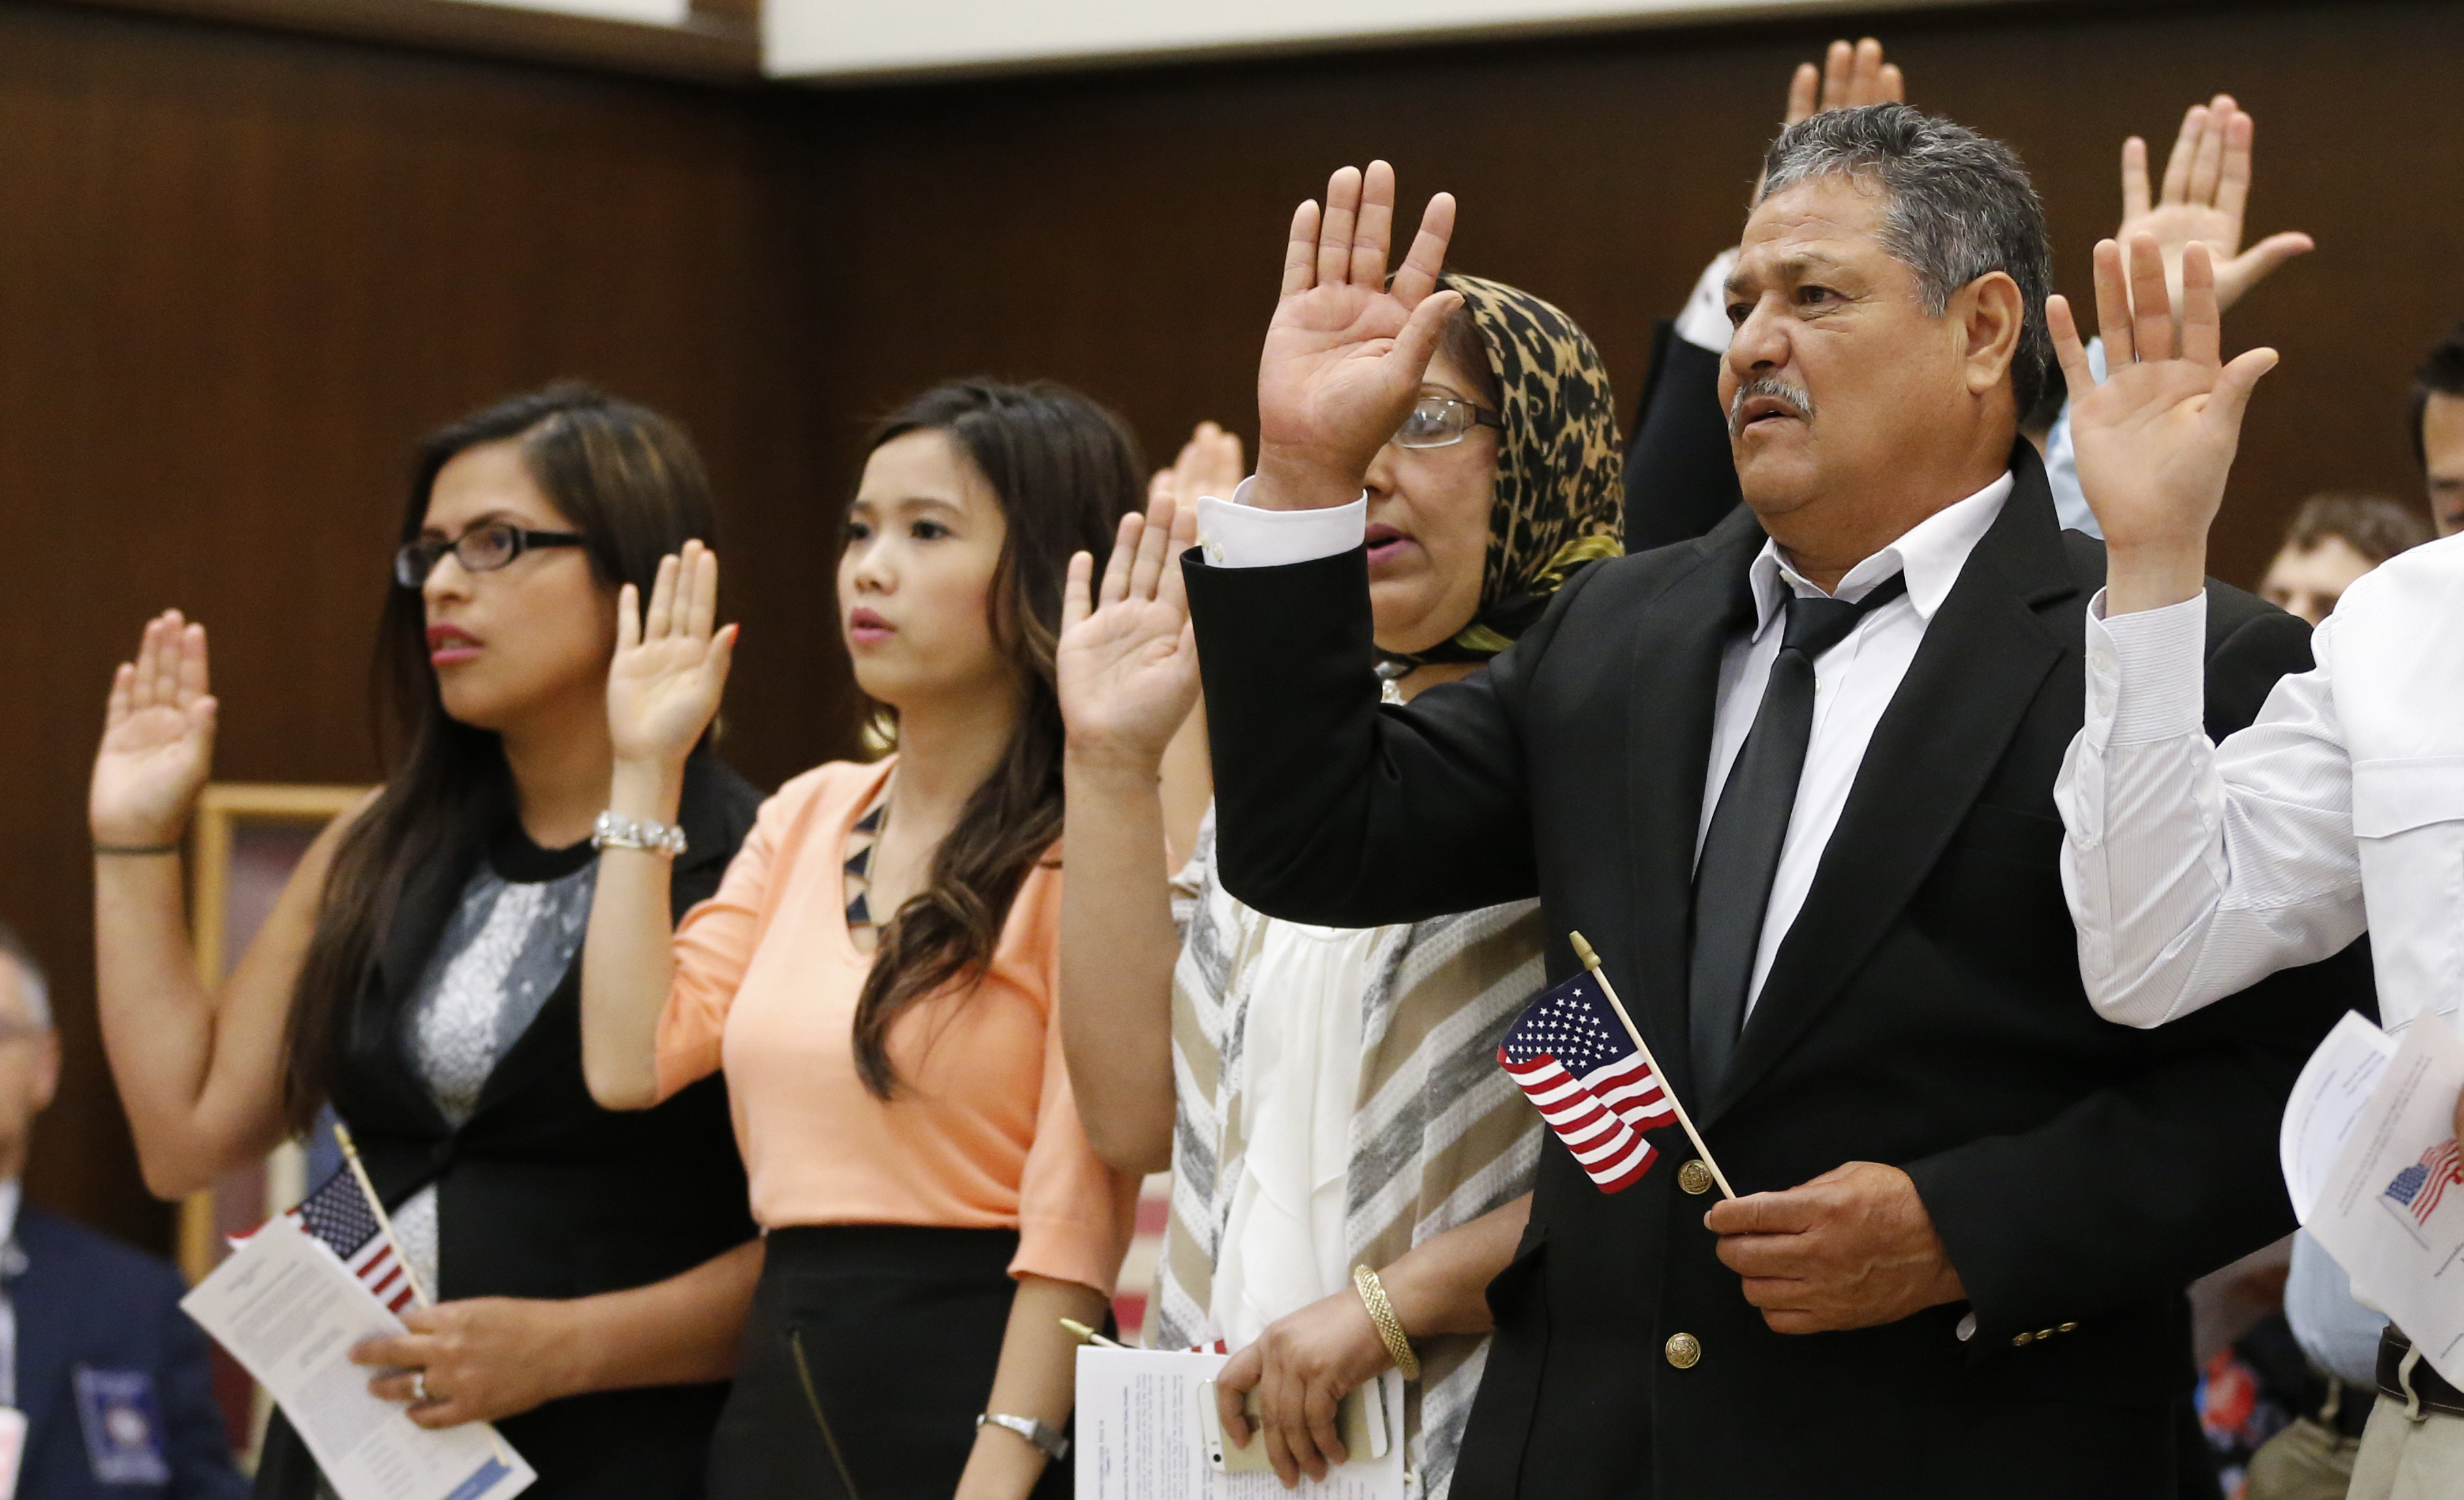 Eduardo Simenta of Mexico, raises his hand as he recites the Oath of Allegiance at a Naturalization Ceremony in Oklahoma City.